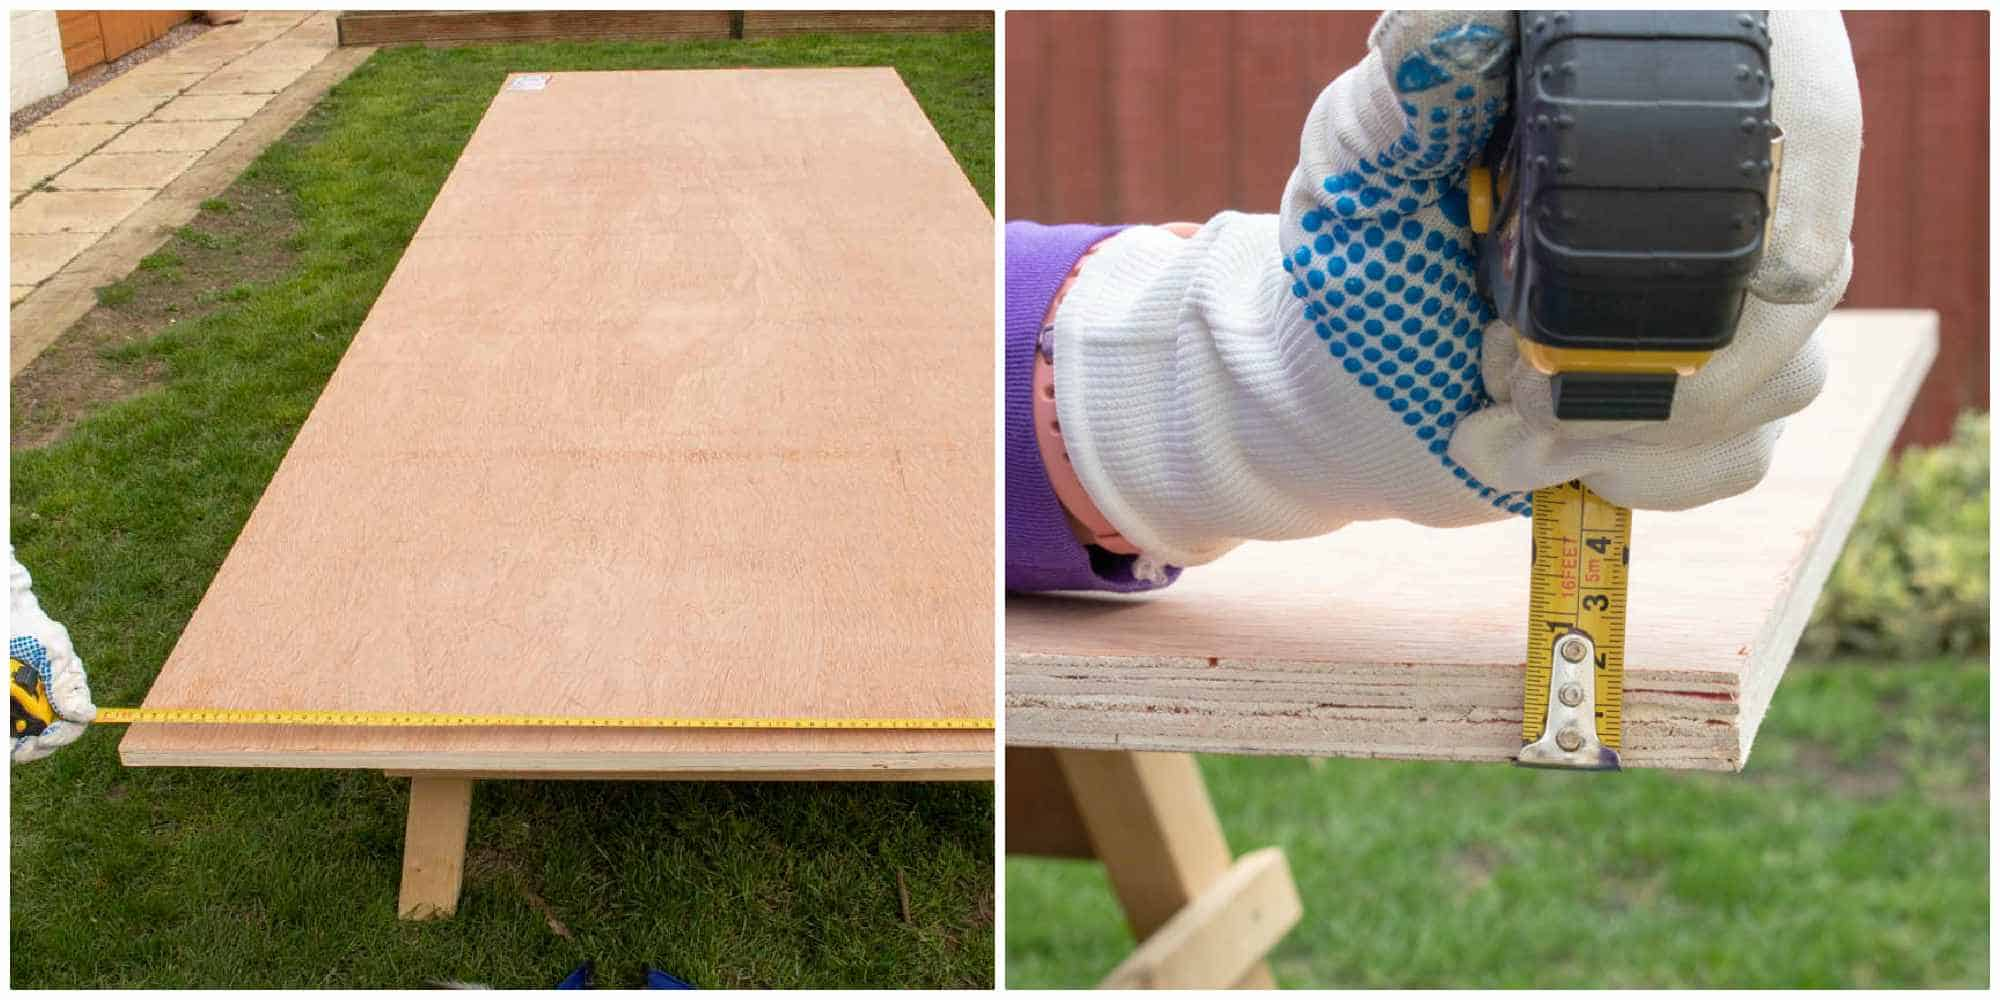 18mm thick plywood from B&Q